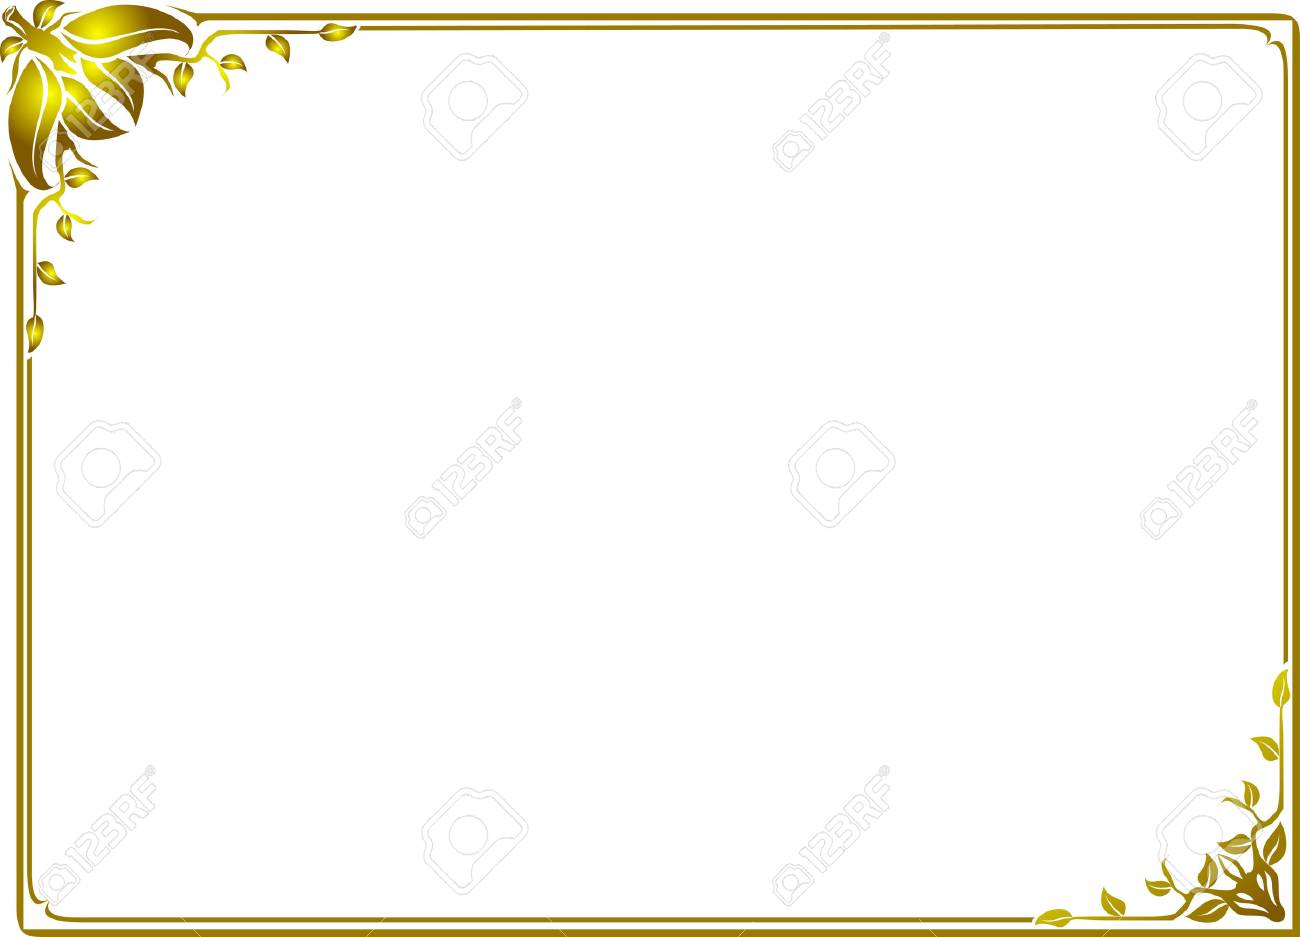 Gold Leaf Frame Floral Royalty Free Cliparts, Vectors, And Stock ...